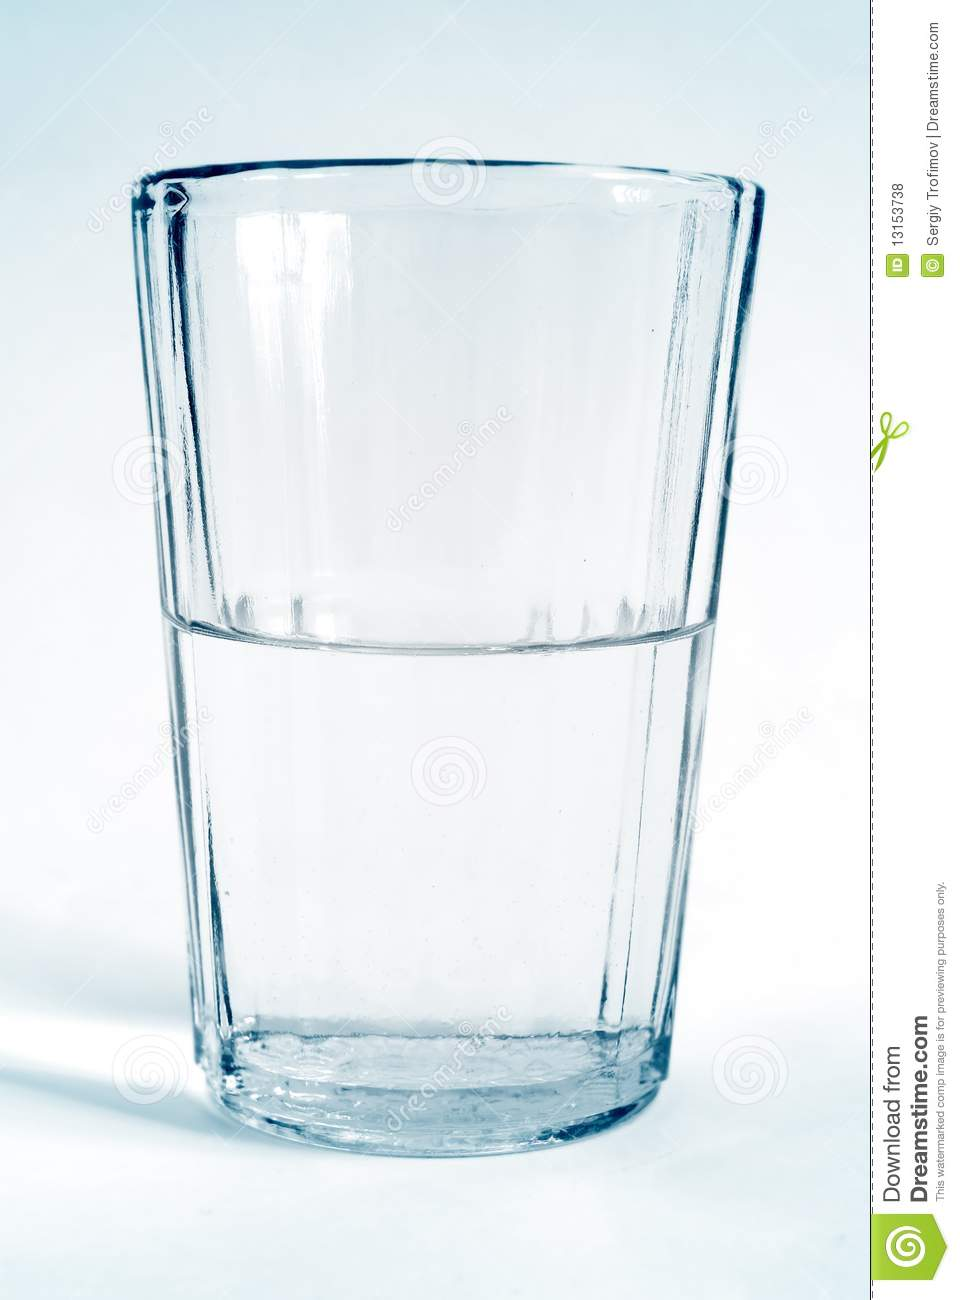 Glass Transparent Cup With Water Royalty Free Stock Photos   Image